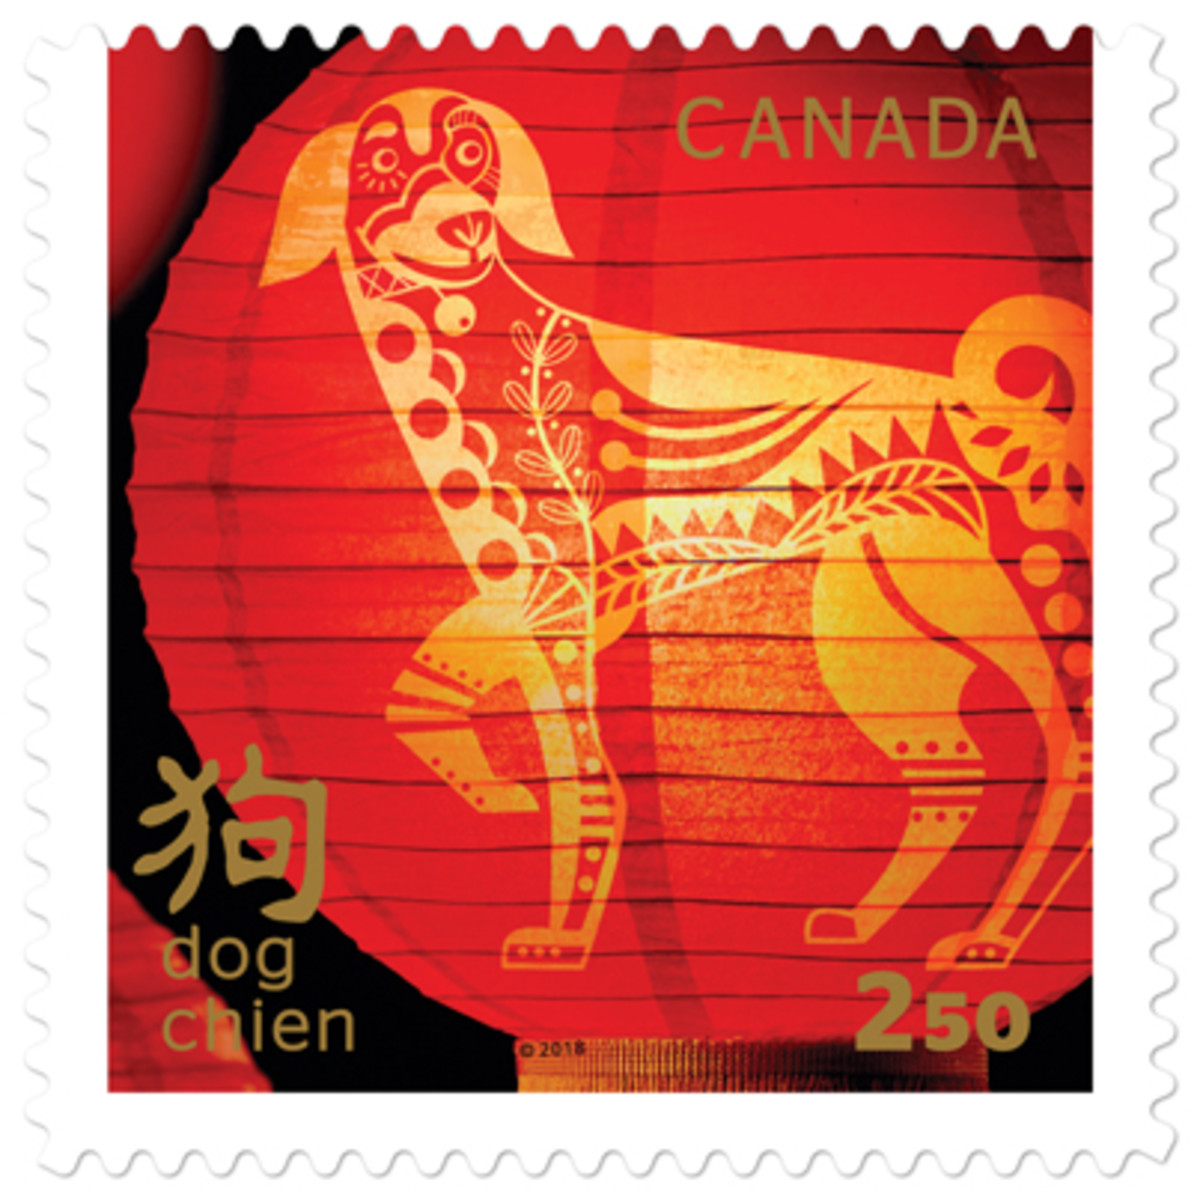 Canada Post issues special stamps for each  New Lunar Year. 2018 is the year of the dog.